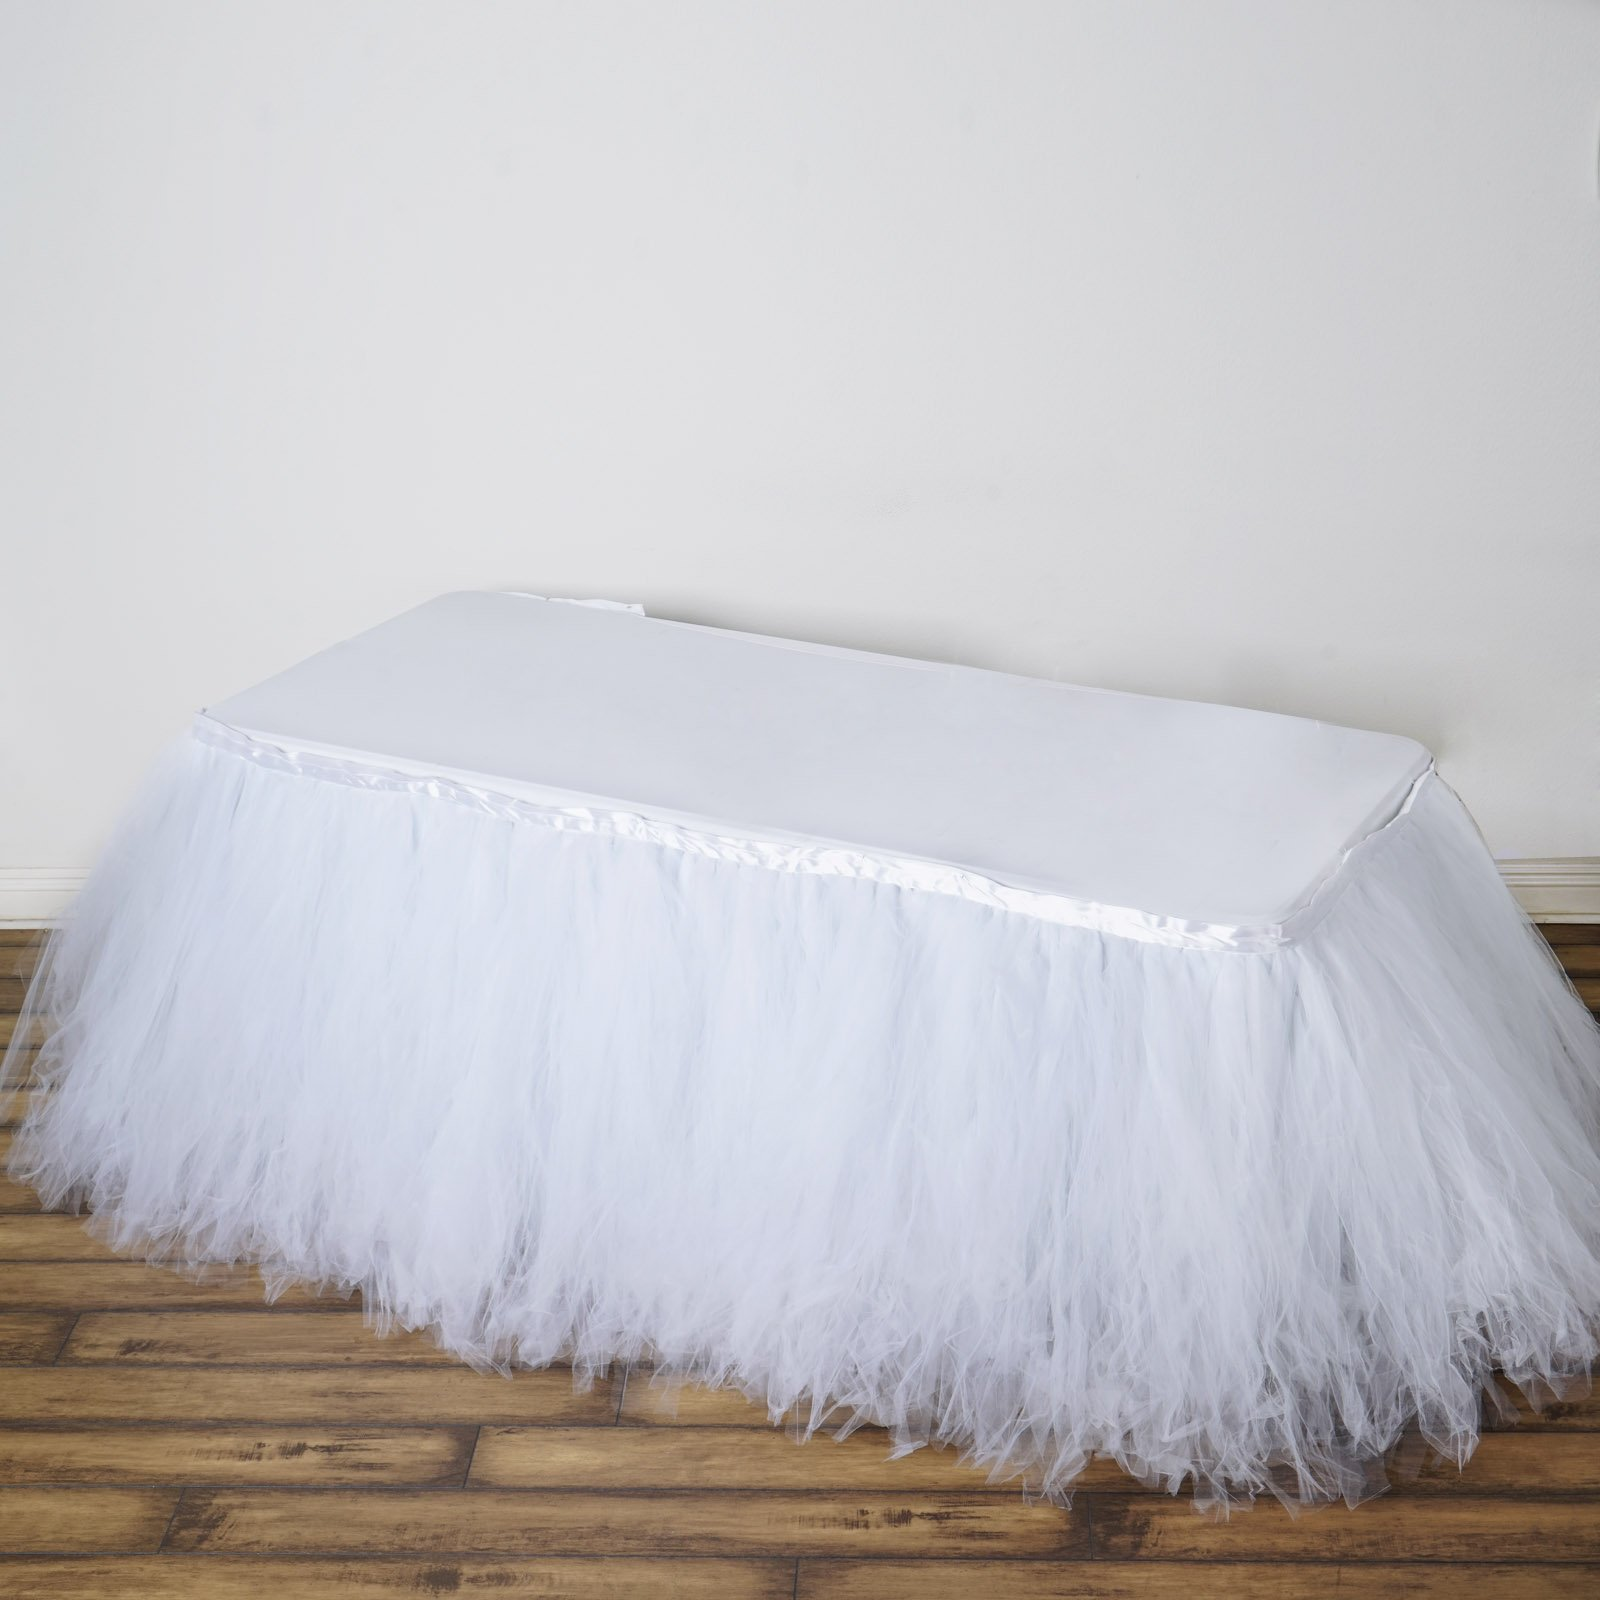 Tableclothsfactory 21ft FULL SIZE 8 Layer Fluffy Tulle - Tutu Table Skirt - White